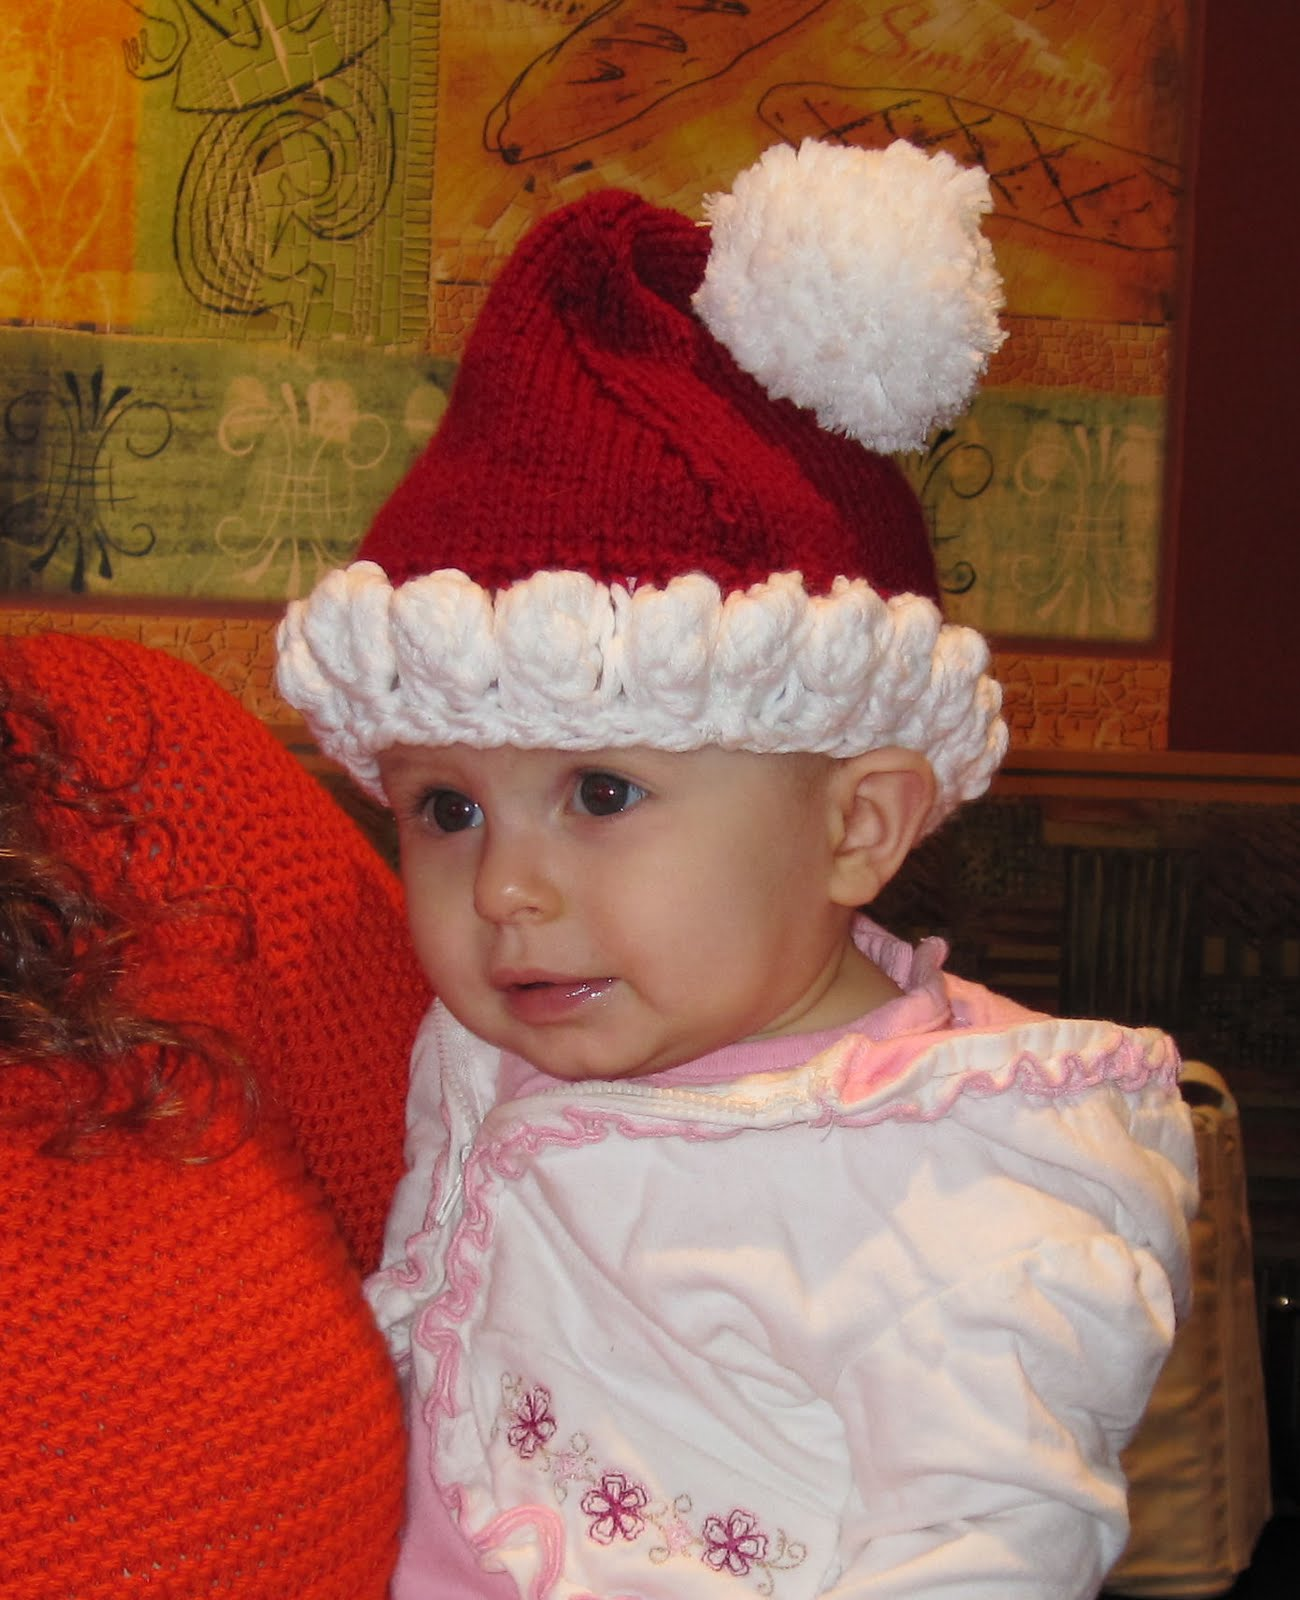 Santa Hat Crochet Pattern | Red Heart - Red Heart Yarn | Yarn